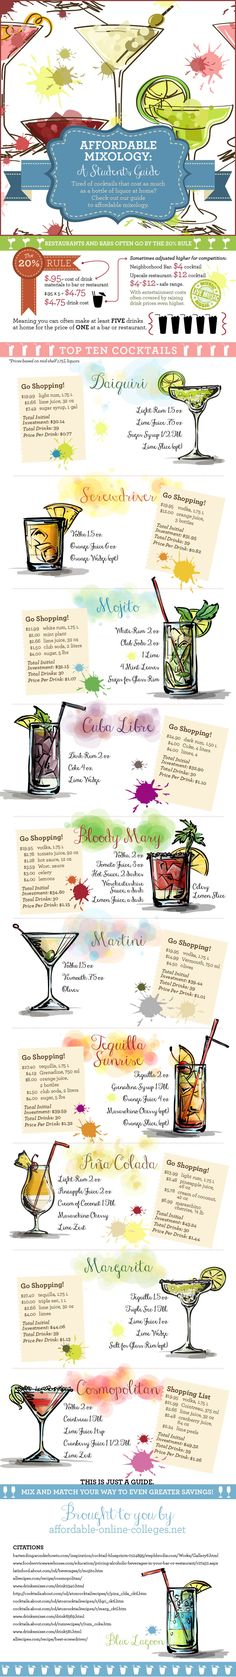 Sip and Save - The 10 most affordable Cocktail Recipes! #plantoparty